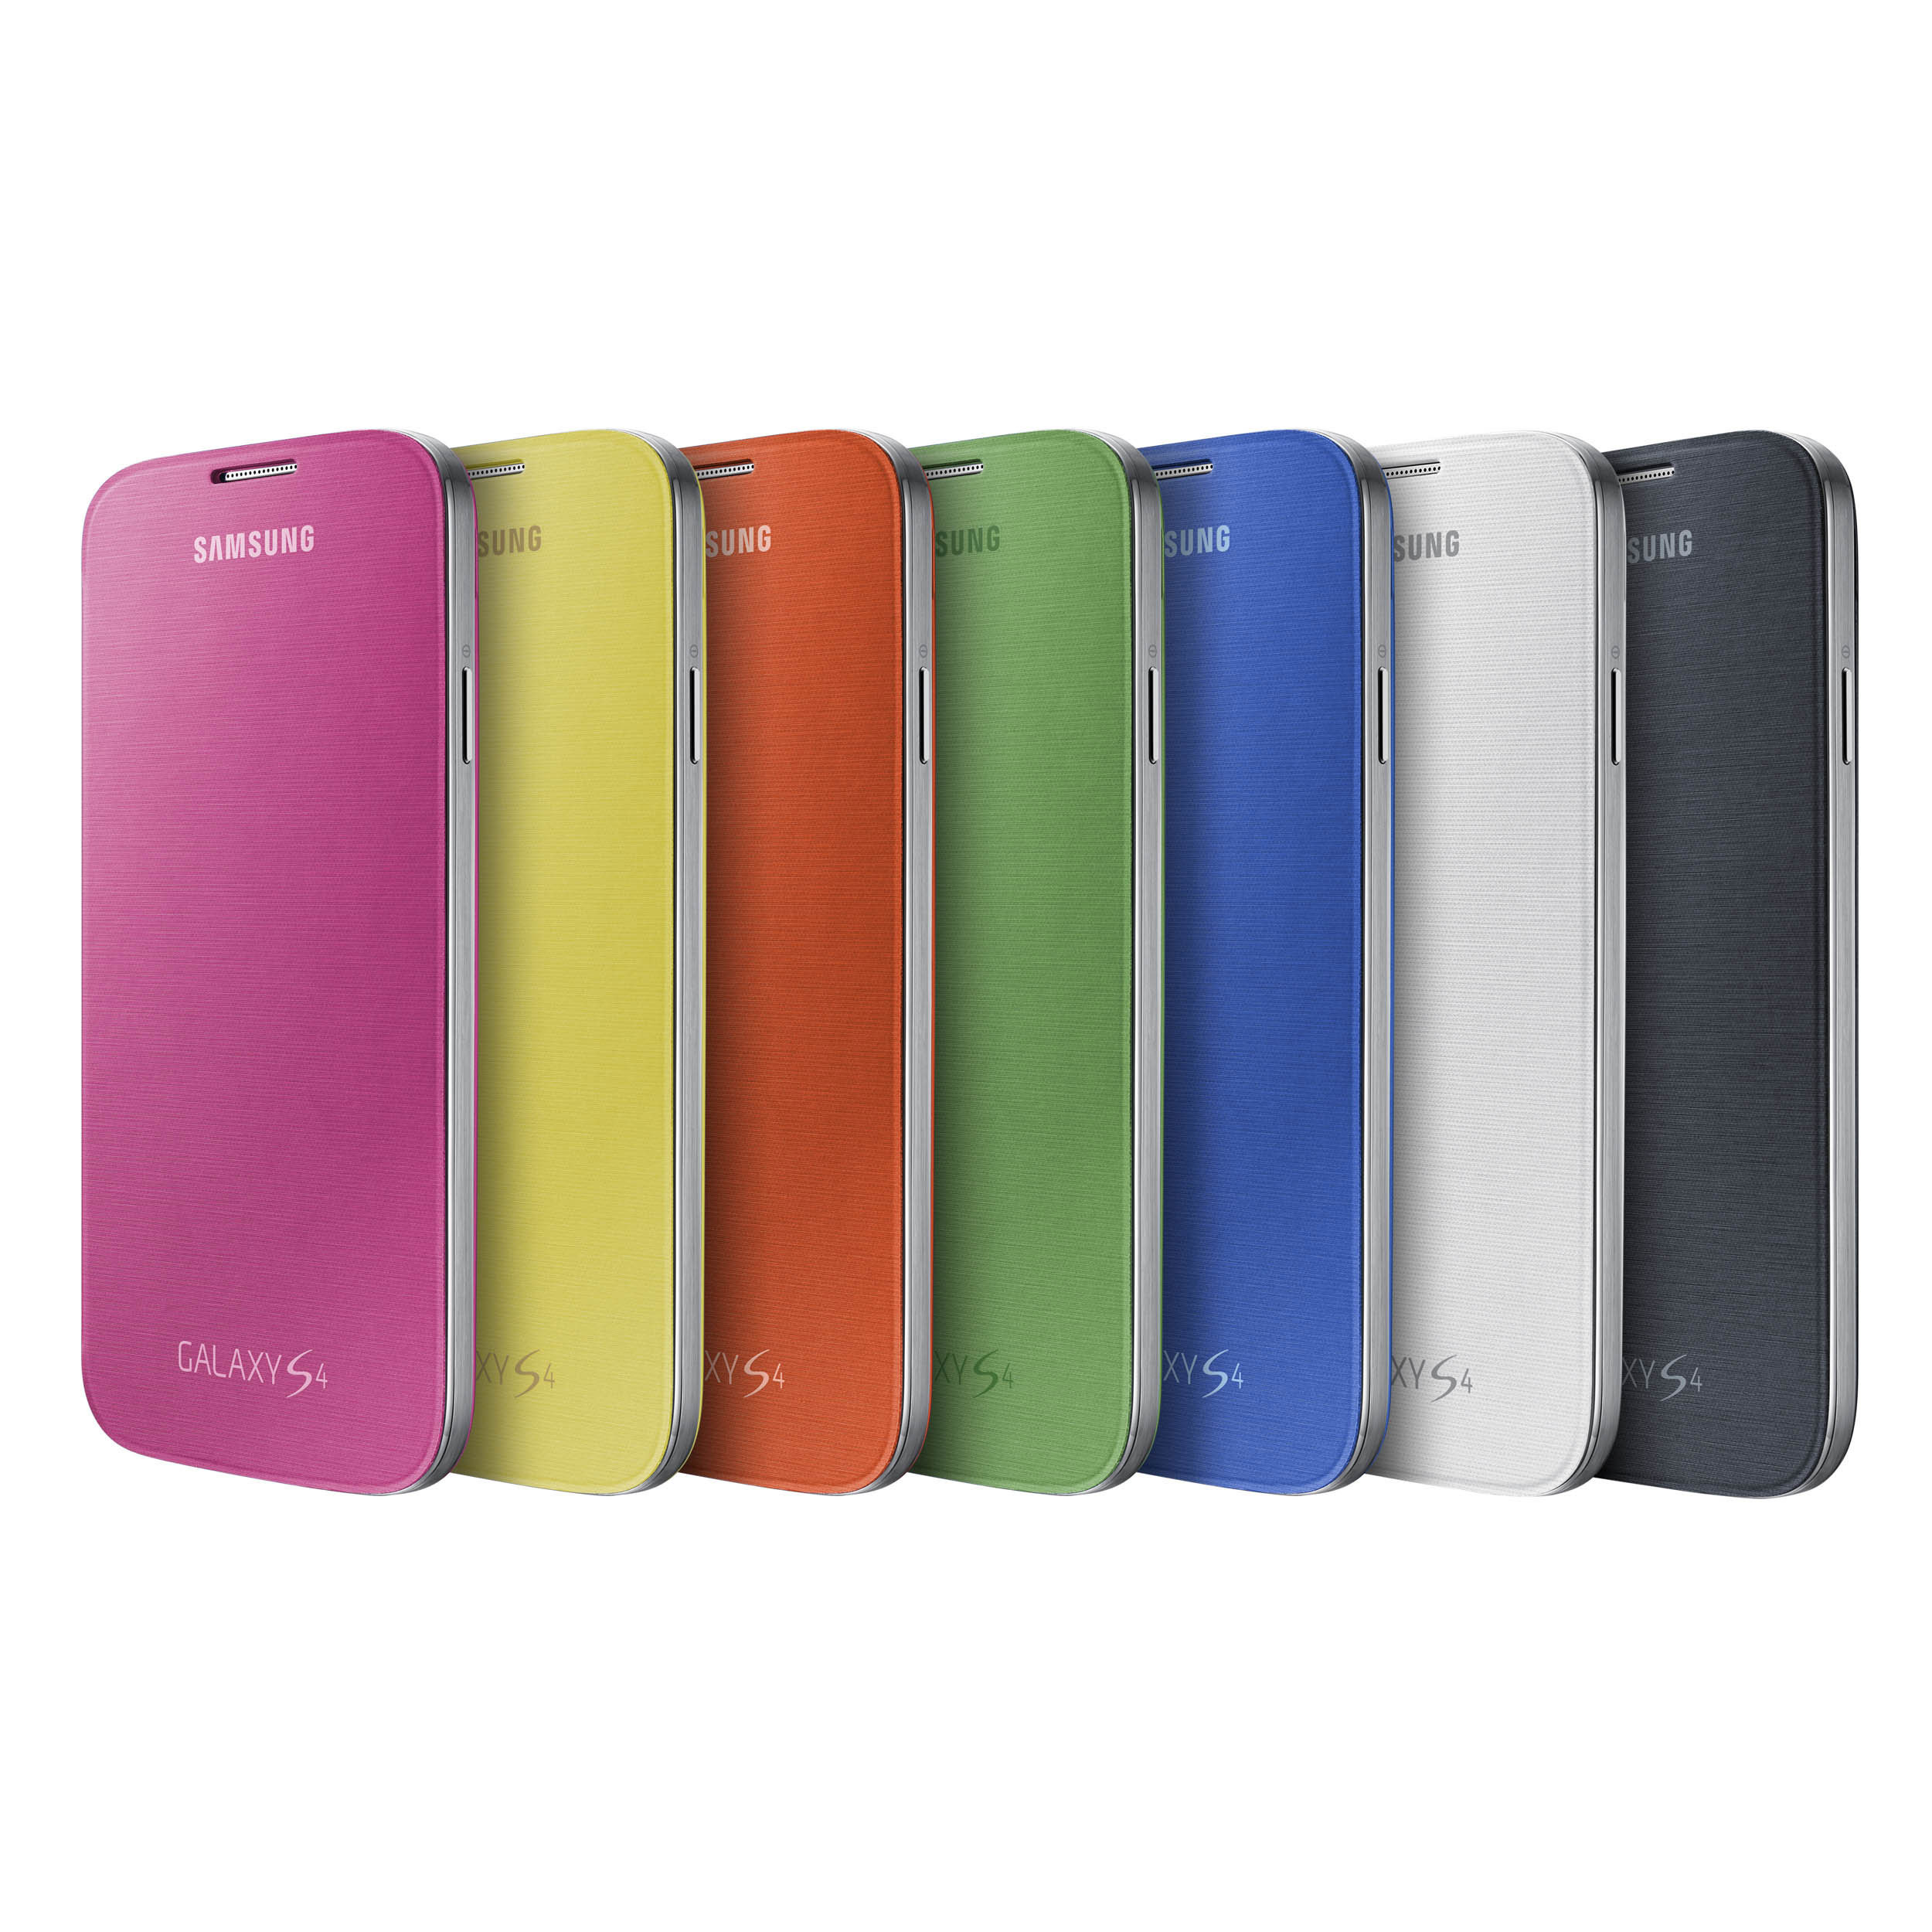 Galaxy S 4 Flip Cover Color Assortment (Photo: Business Wire)